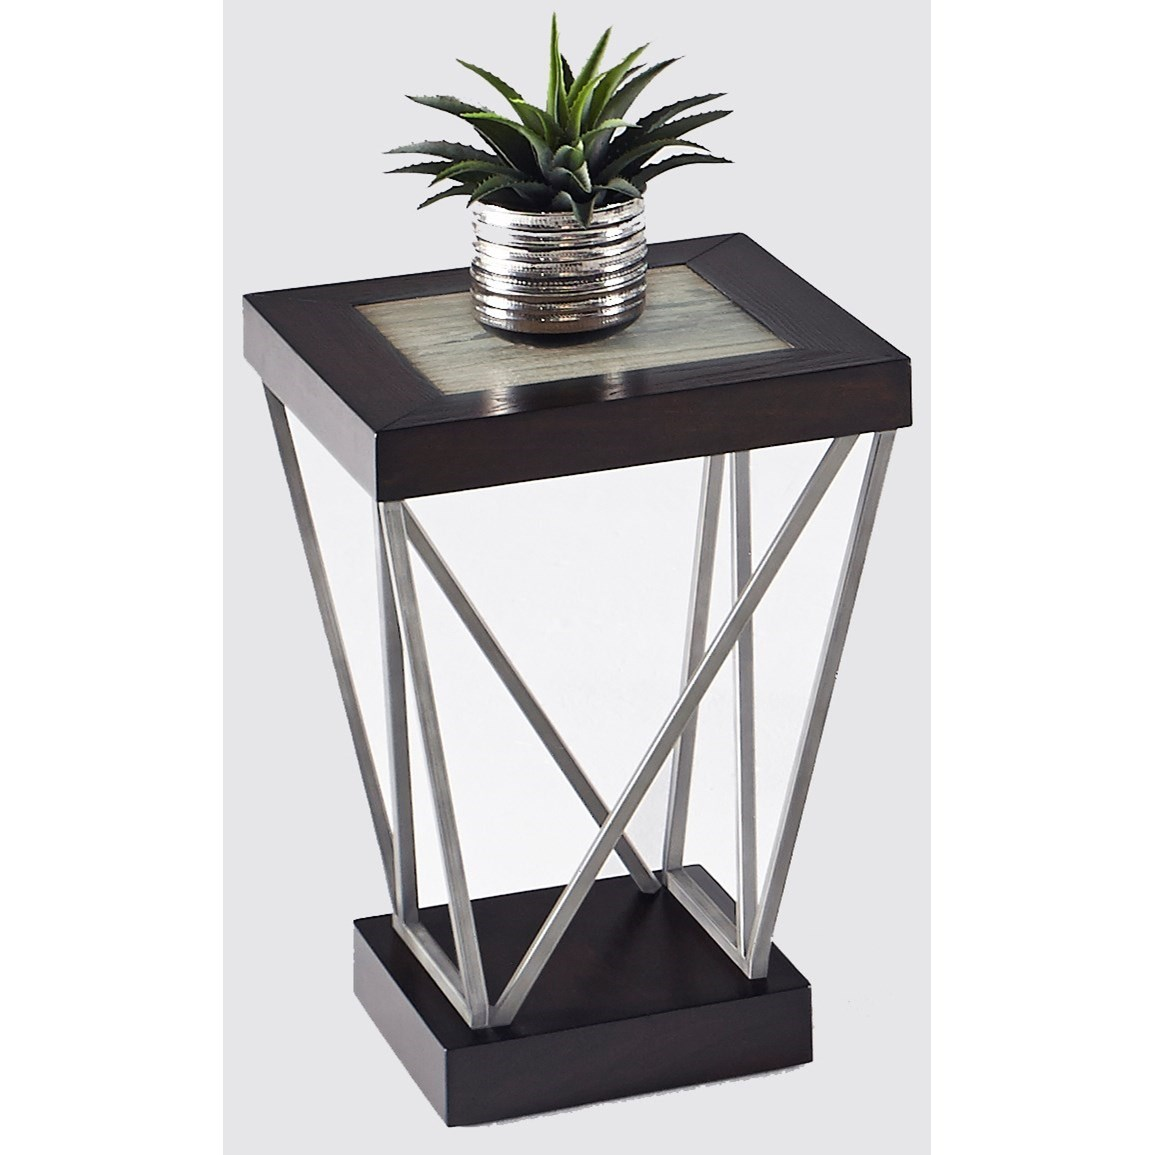 East Bay Chairside Table by Progressive Furniture at Catalog Outlet